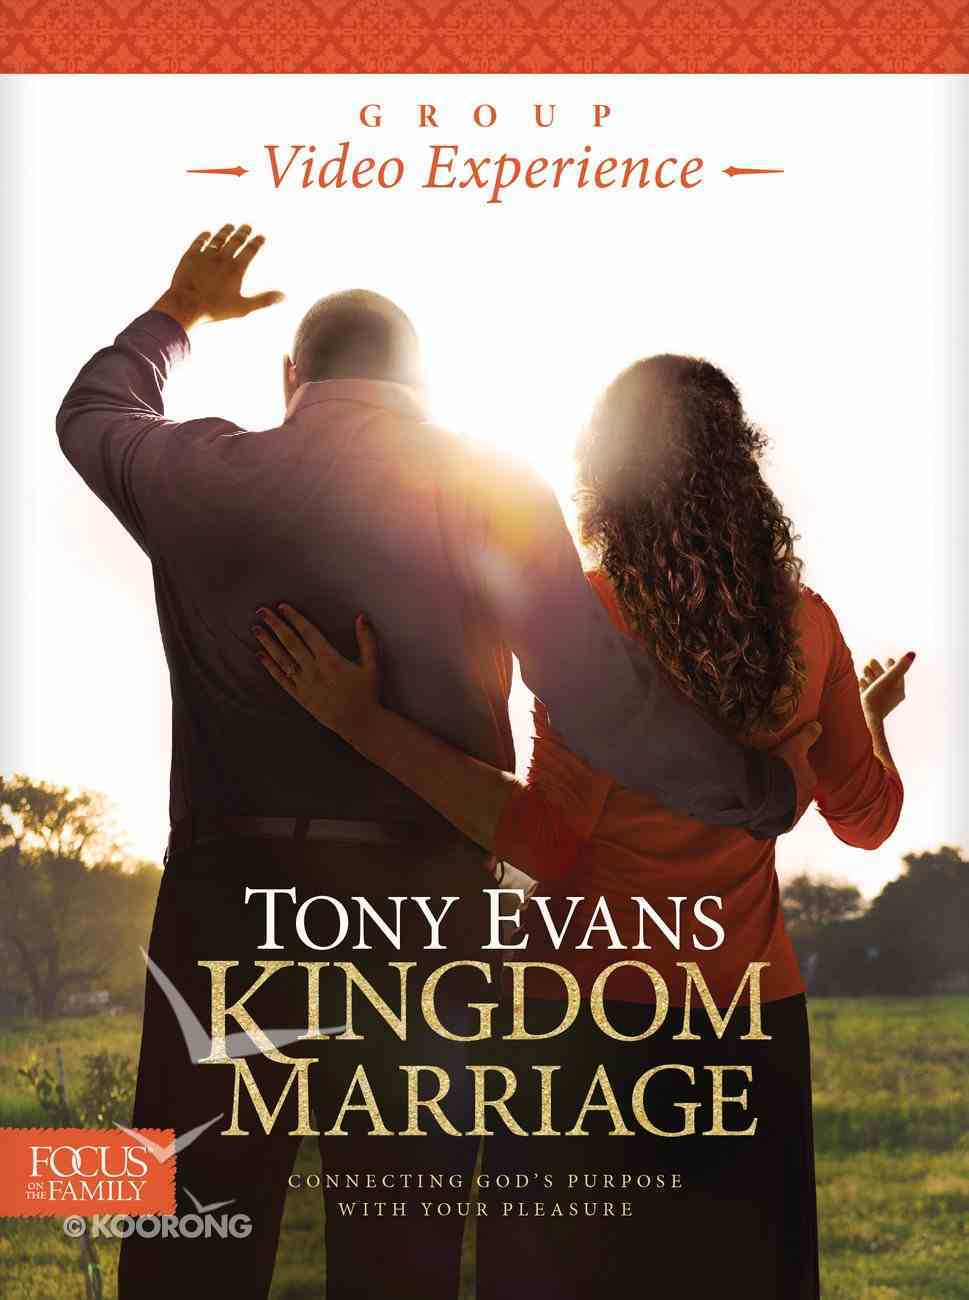 Kingdom Marriage (Group Video Experience, Leader's Guide Included On Dvd, Participant Study) Pack